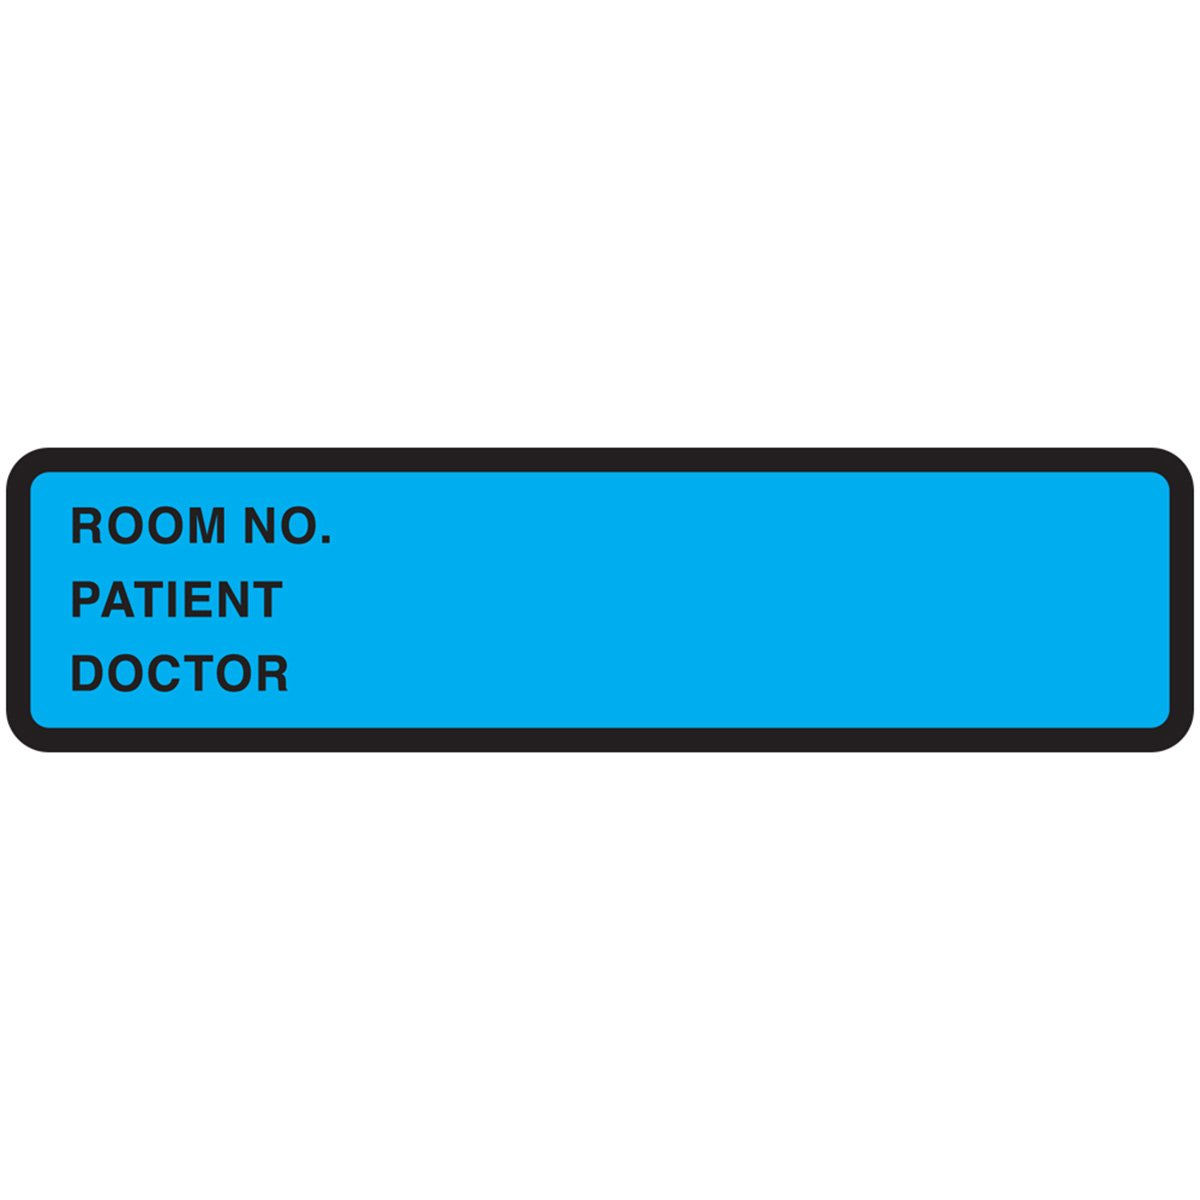 PDC Miami Mall Healthcare 59704843 Binder Chart Room Label Removable Paper Limited time trial price